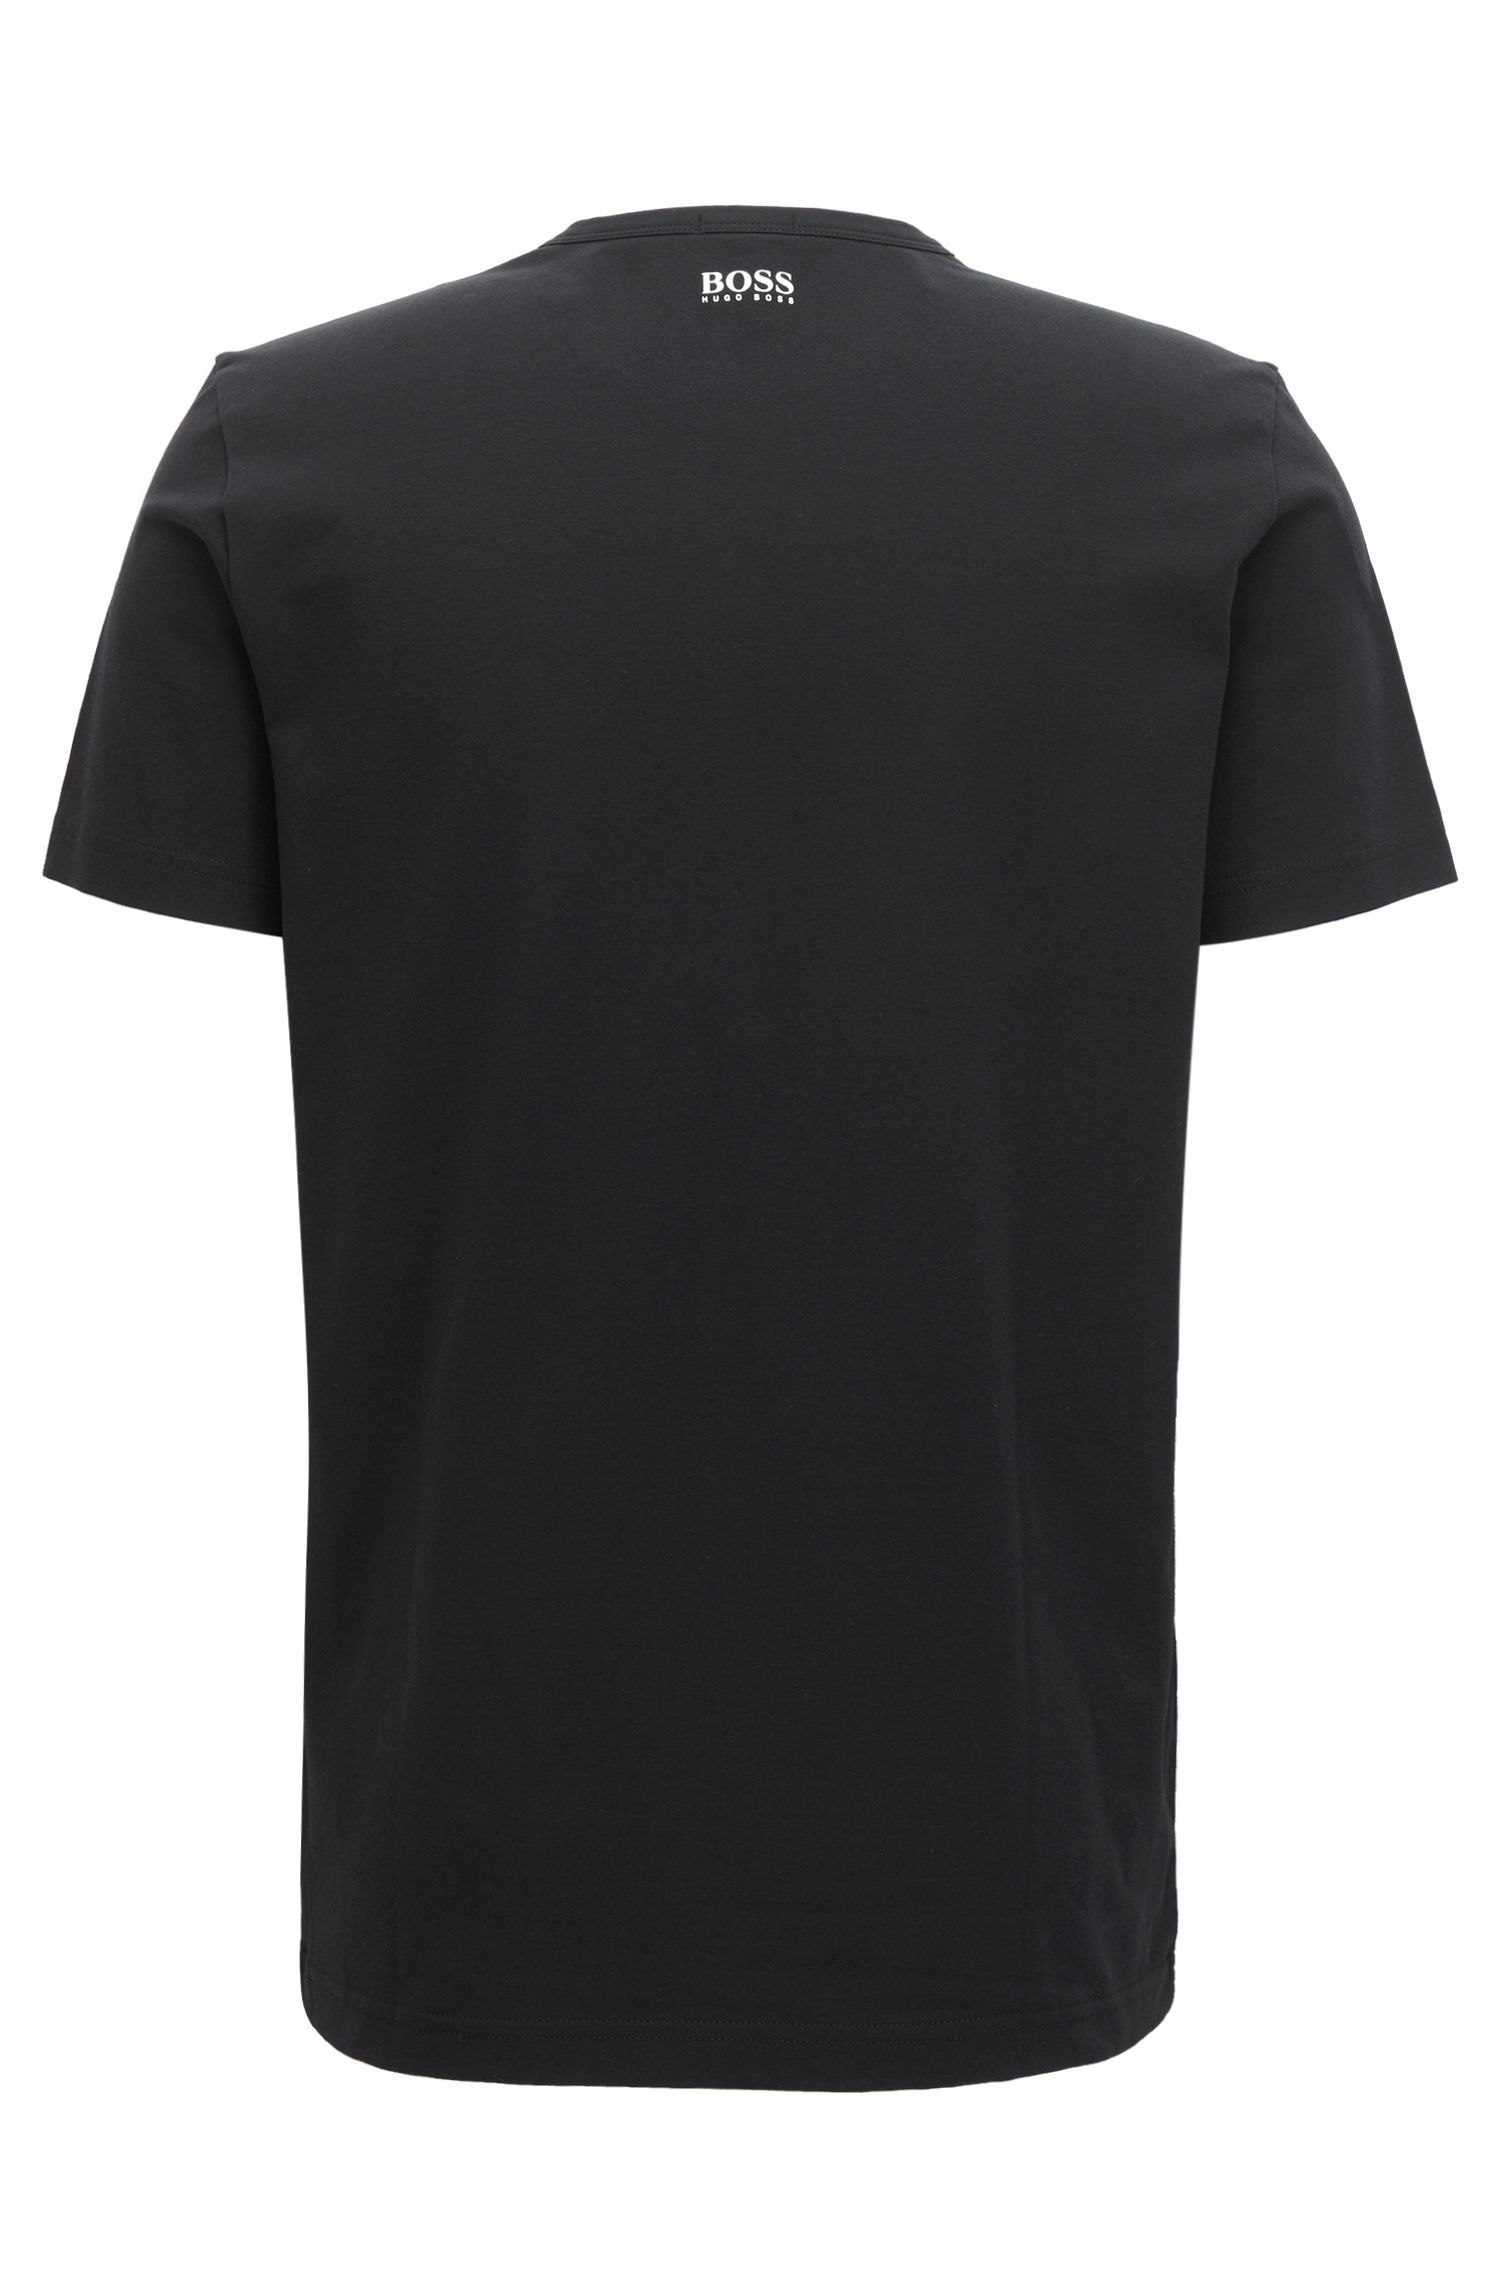 Stretch cotton jersey T-shirt with logo artwork